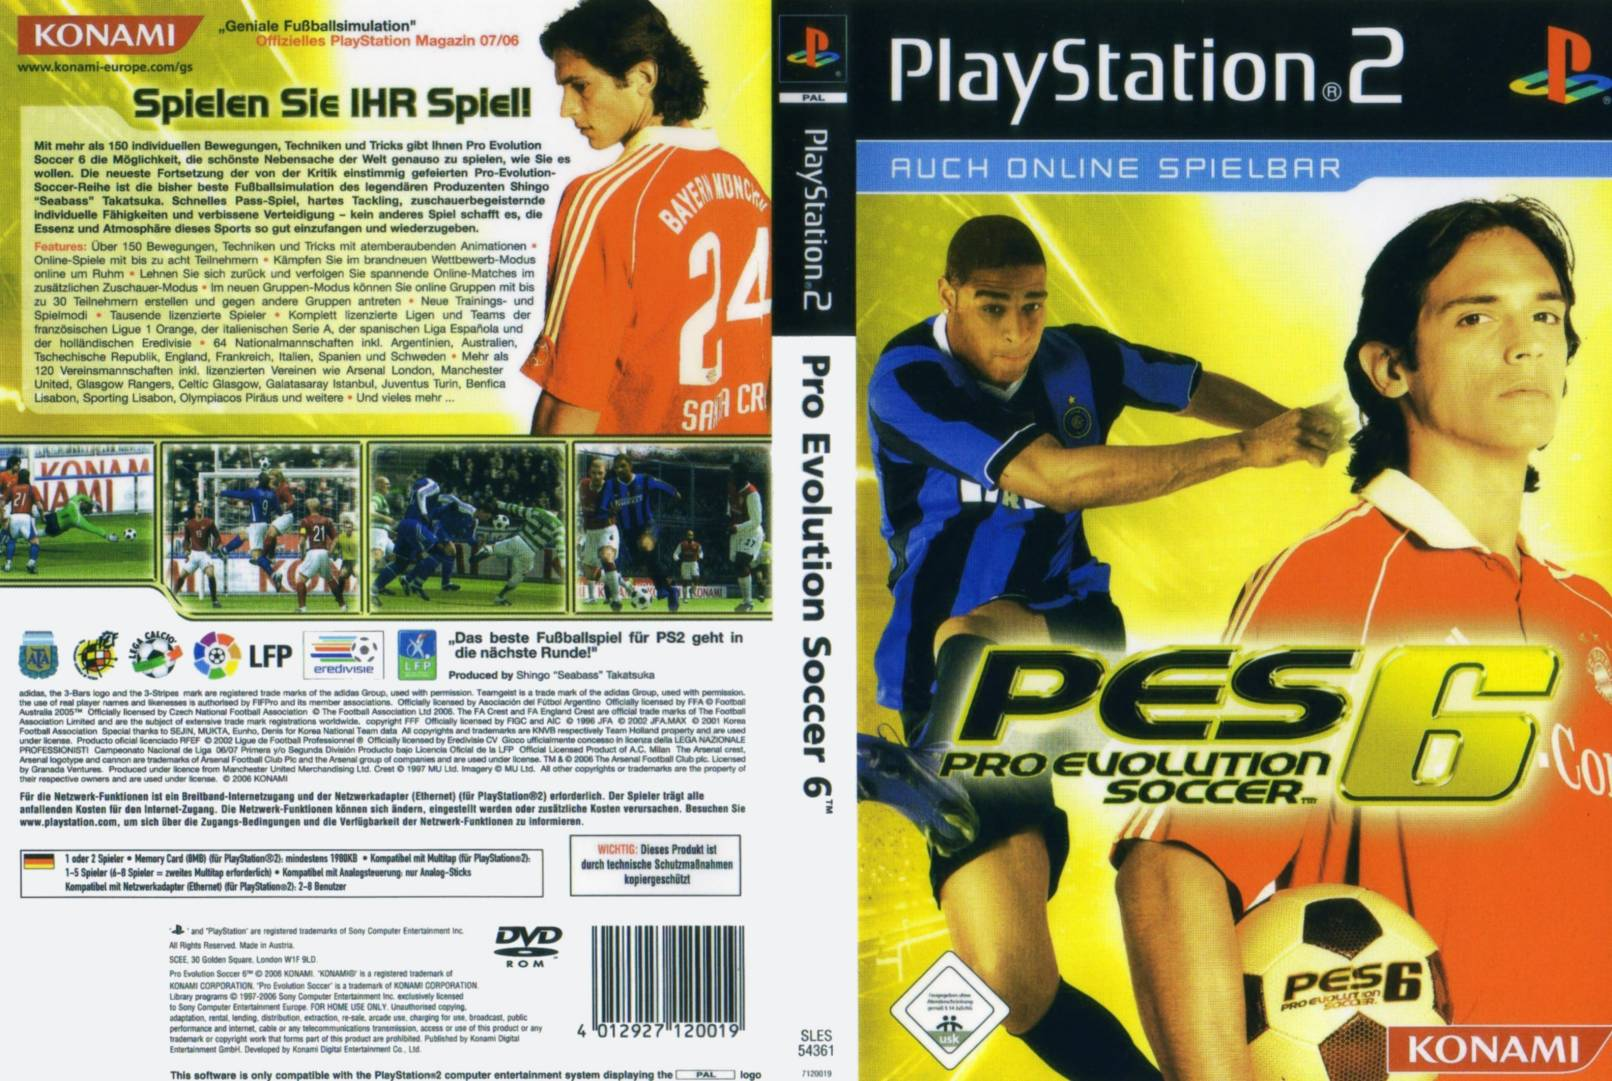 Pro Evolution Soccer 6 D Playstation 2 Covers Cover Century Over 500 000 Album Art Covers For Free